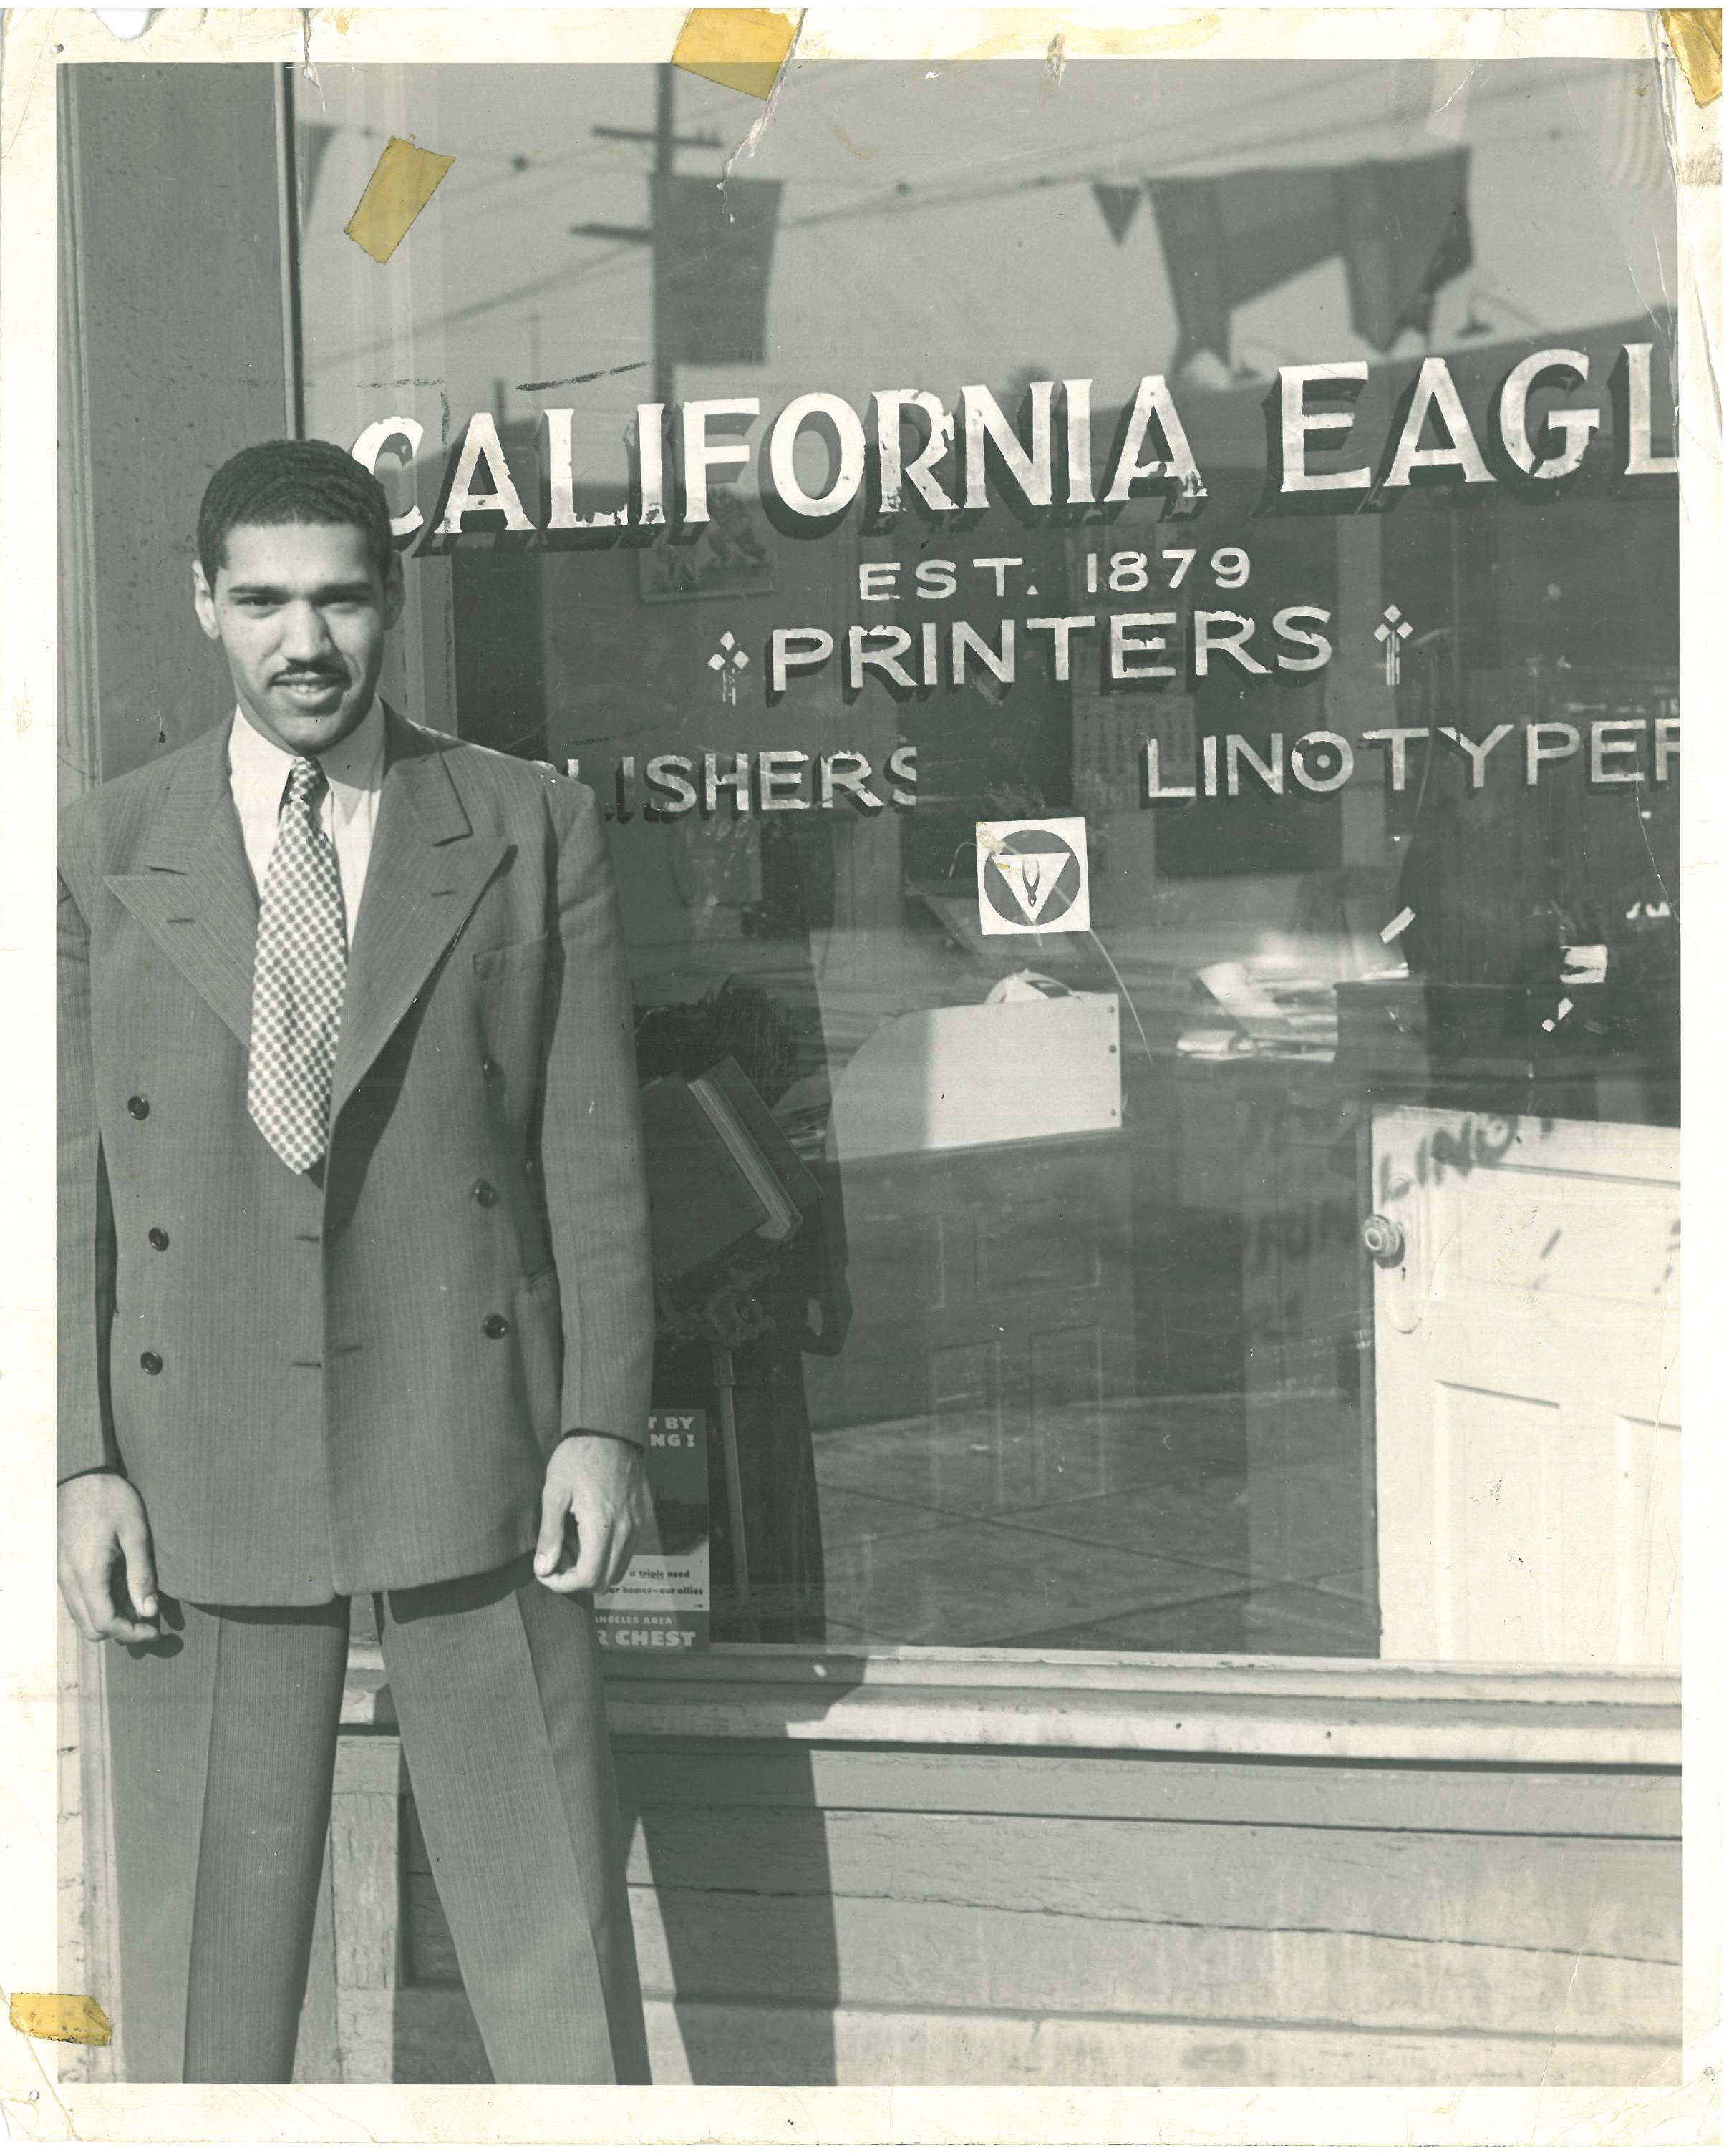 Figure 6.3. John Kinloch in front of the California Eagle offices circa 1941. Credit: Charlotta Bass Collection, Southern California Library (Los Angeles).